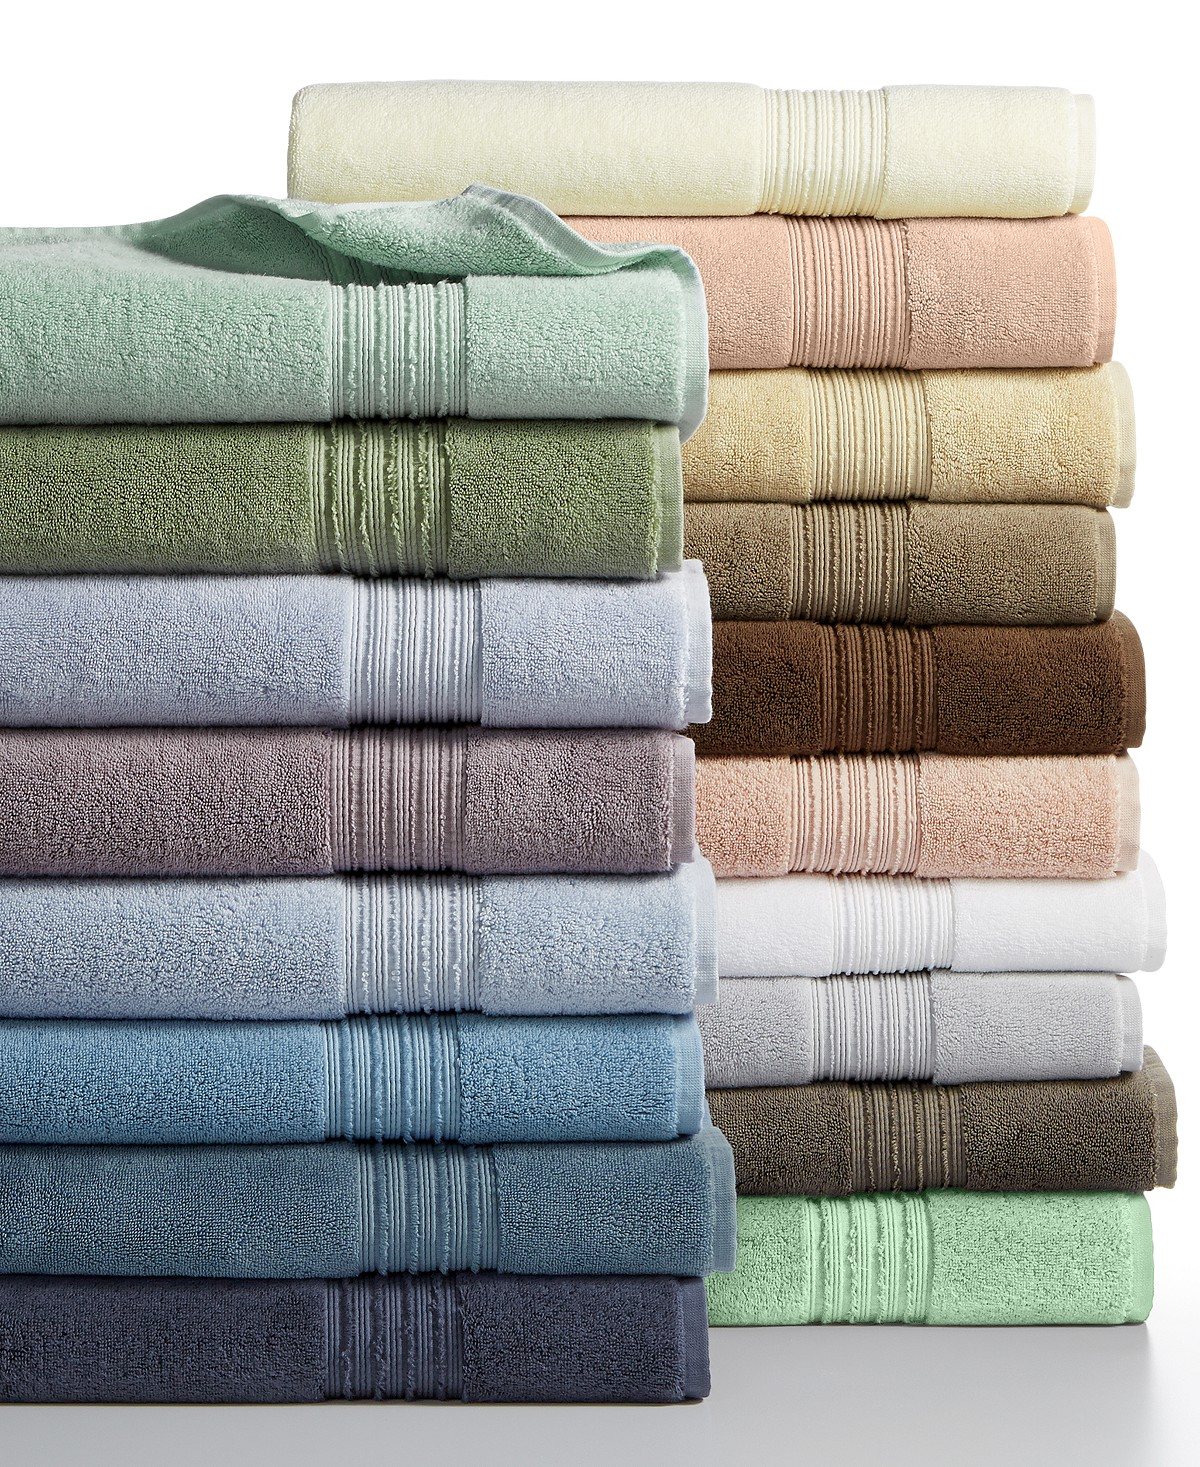 Hand Towels Meaning: Top 20 Must Haves For Your First Apartment